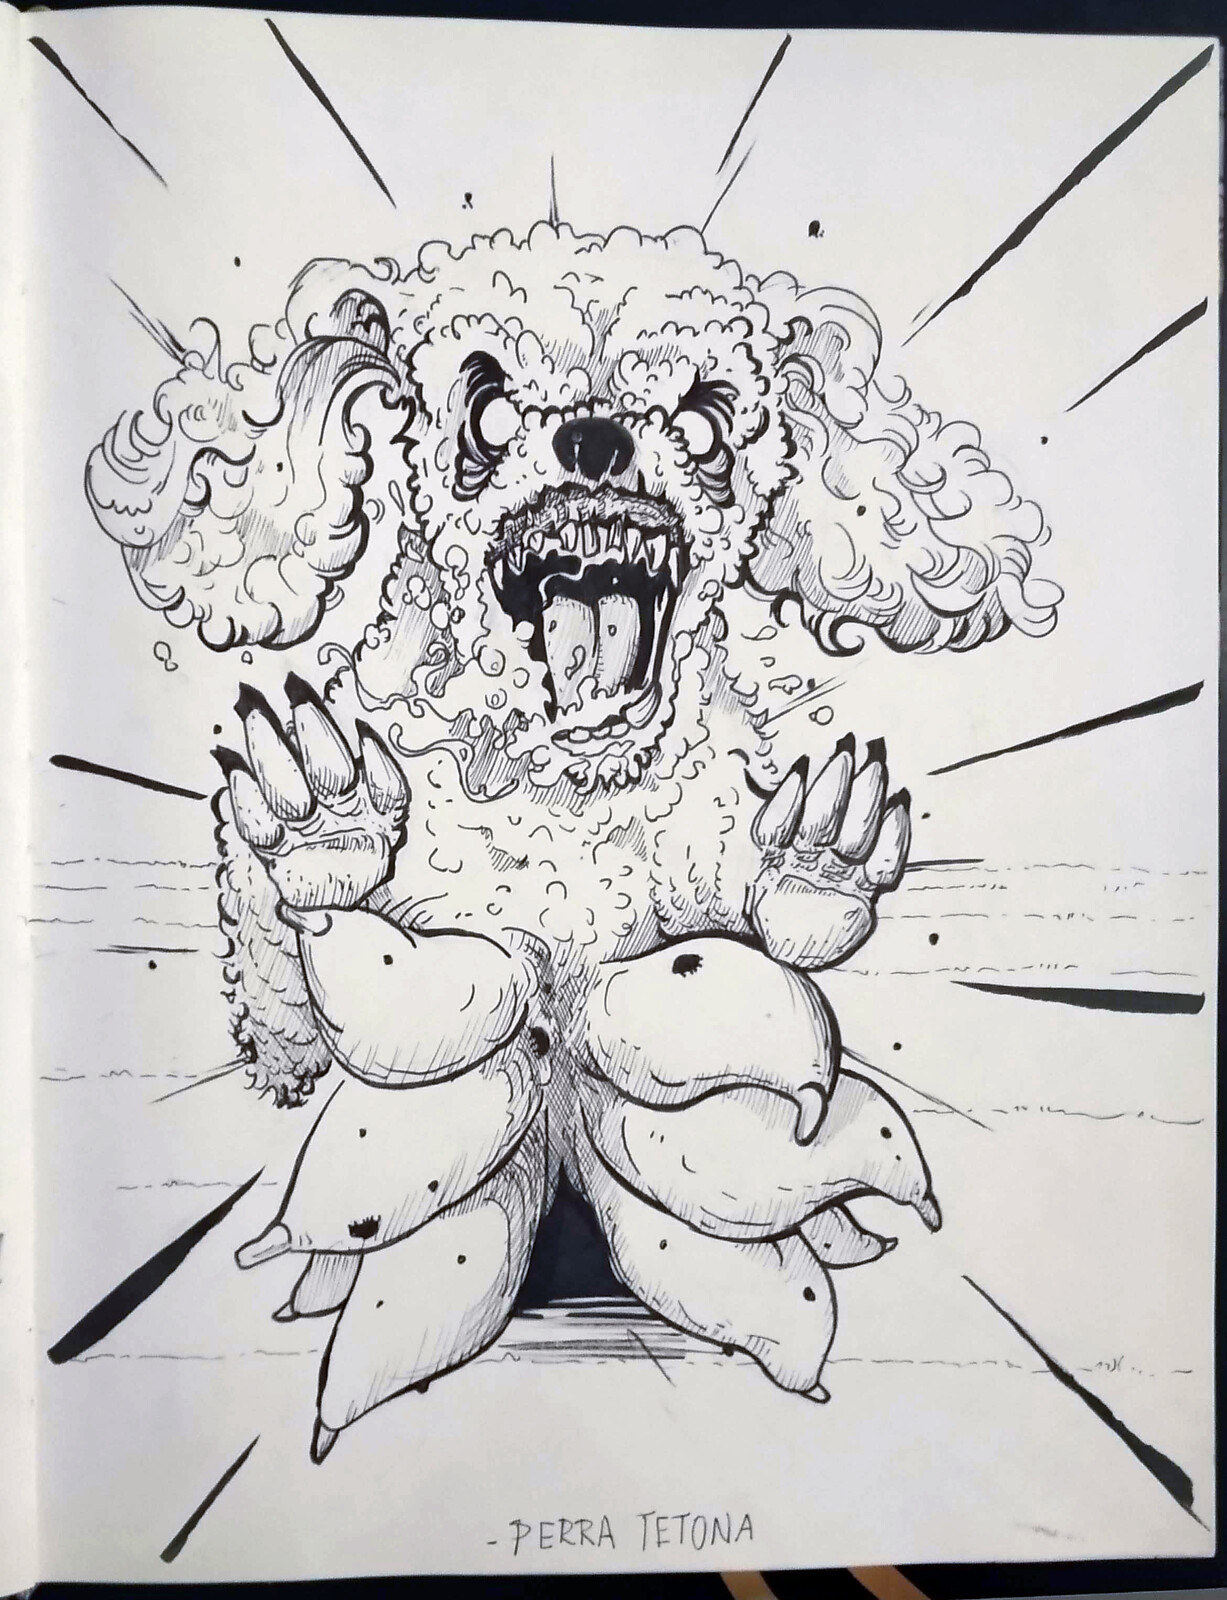 Perra Tetona (big tits dog) From Salto, Uruguay. It's a ugly old dirty dog who scares children who don't want to sleep, and puts its tits on the children mouth, forces them to drink, and this hipnotizes them, forcing them to sleep.